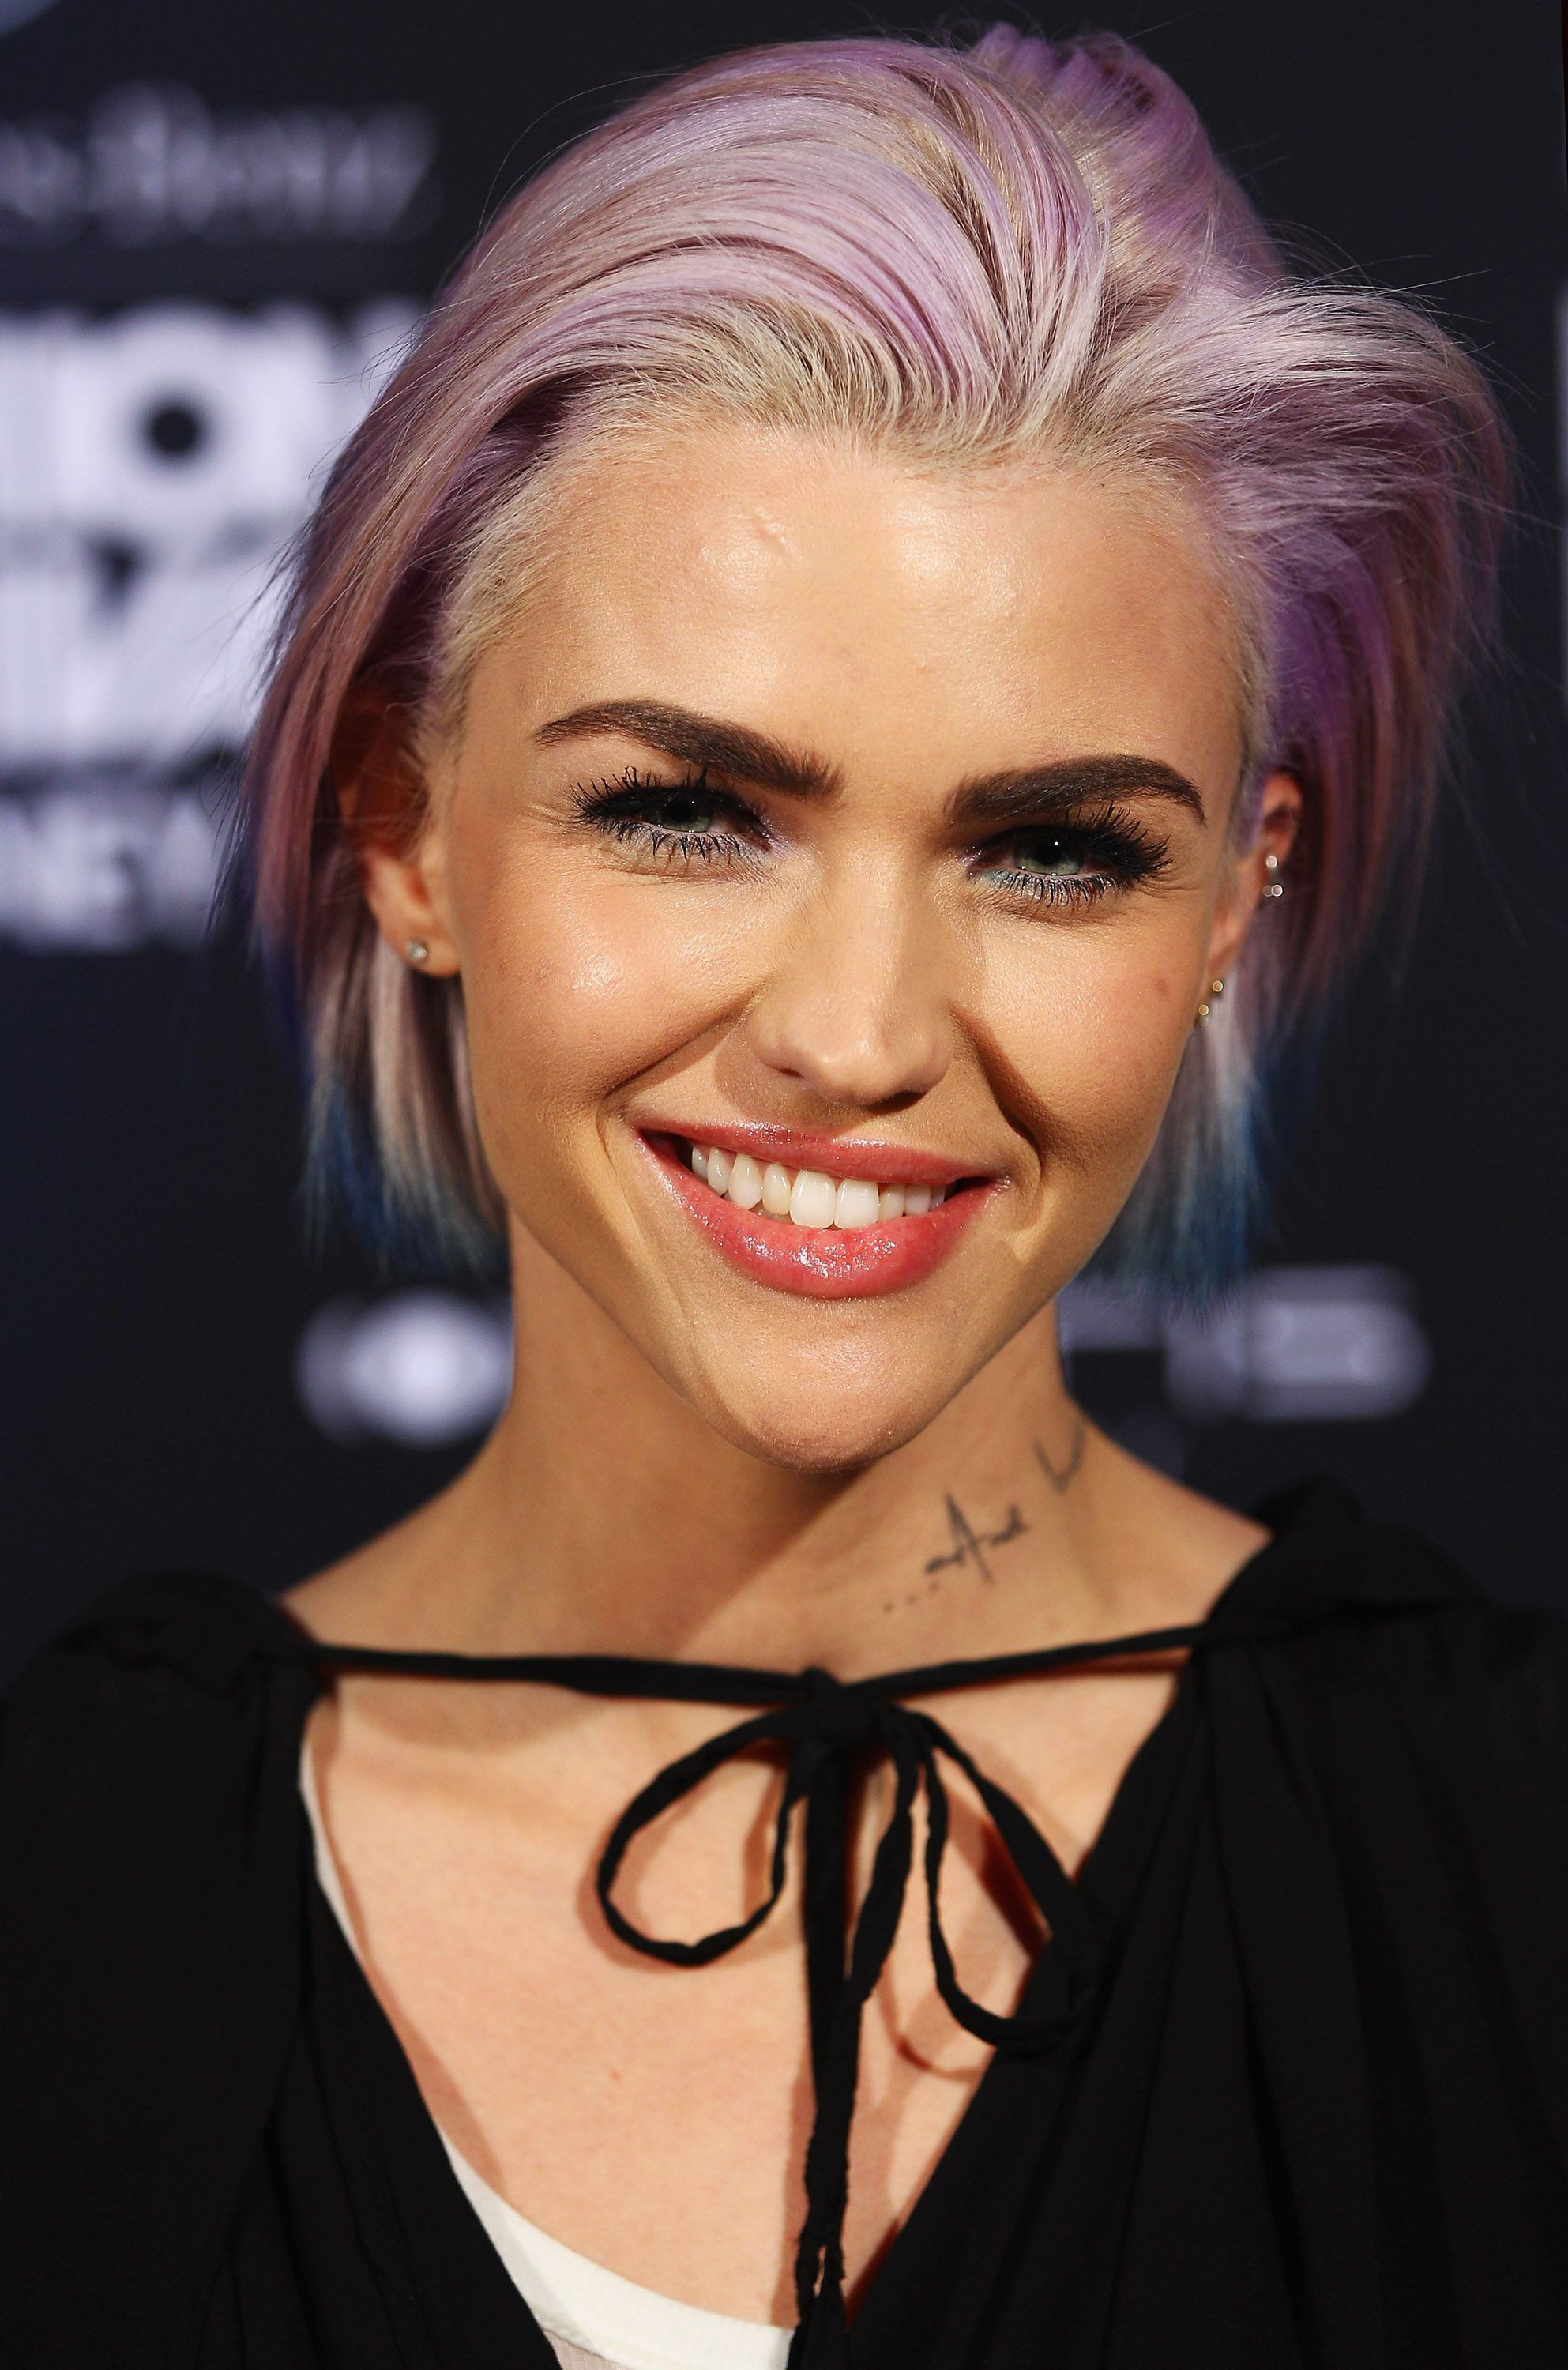 Ruby Rose Long And Short Hair Beauty Makeup Looks Tattoos More